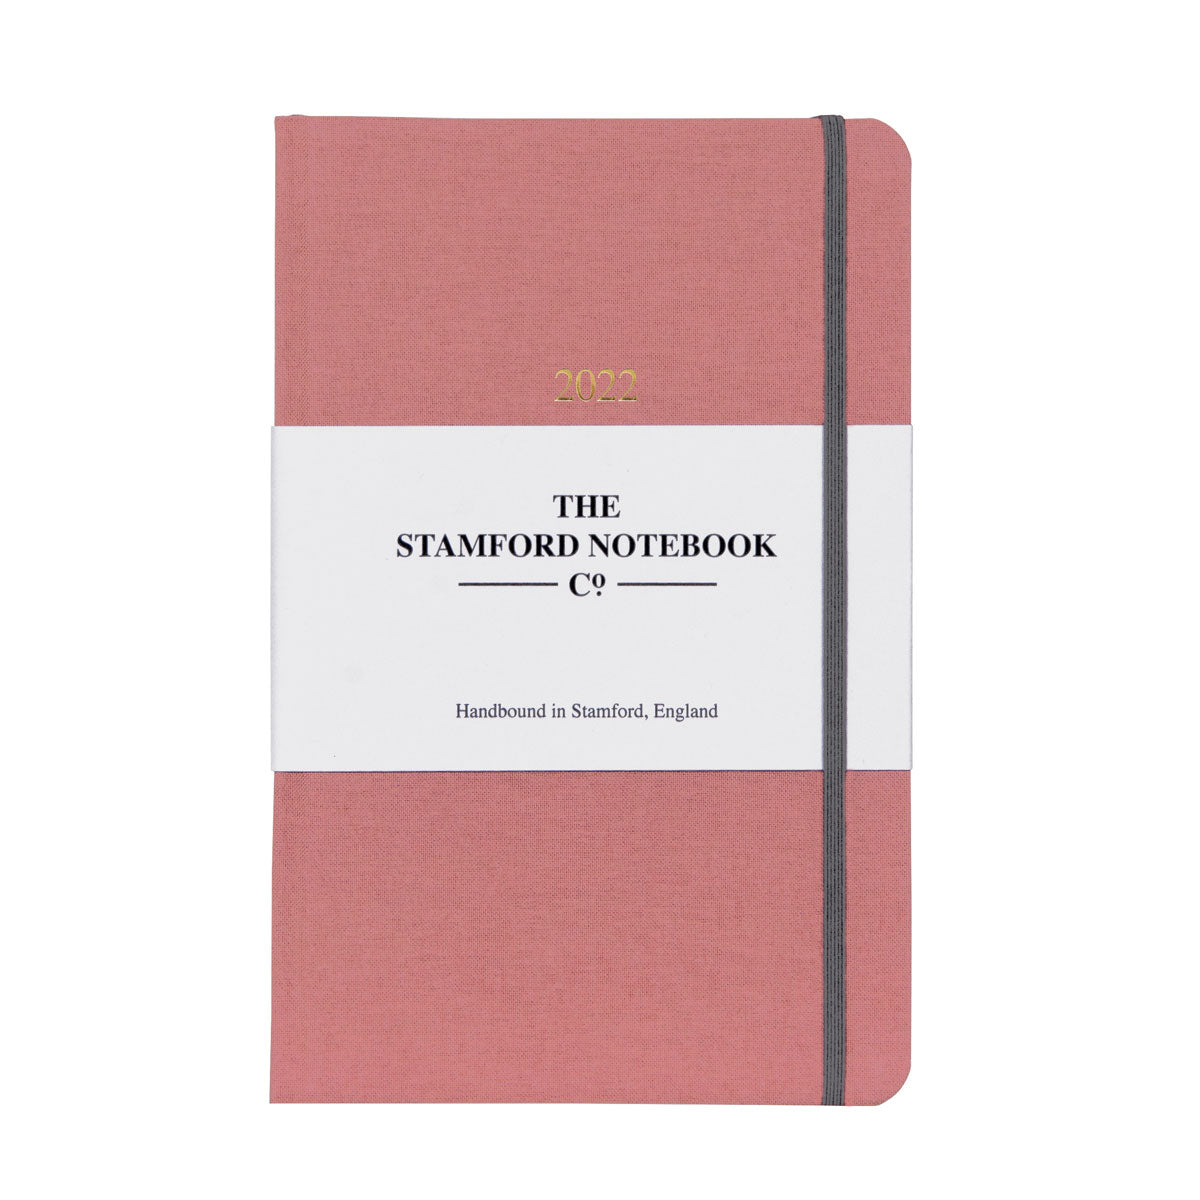 2022 Woven Cloth Diary Rose Pink